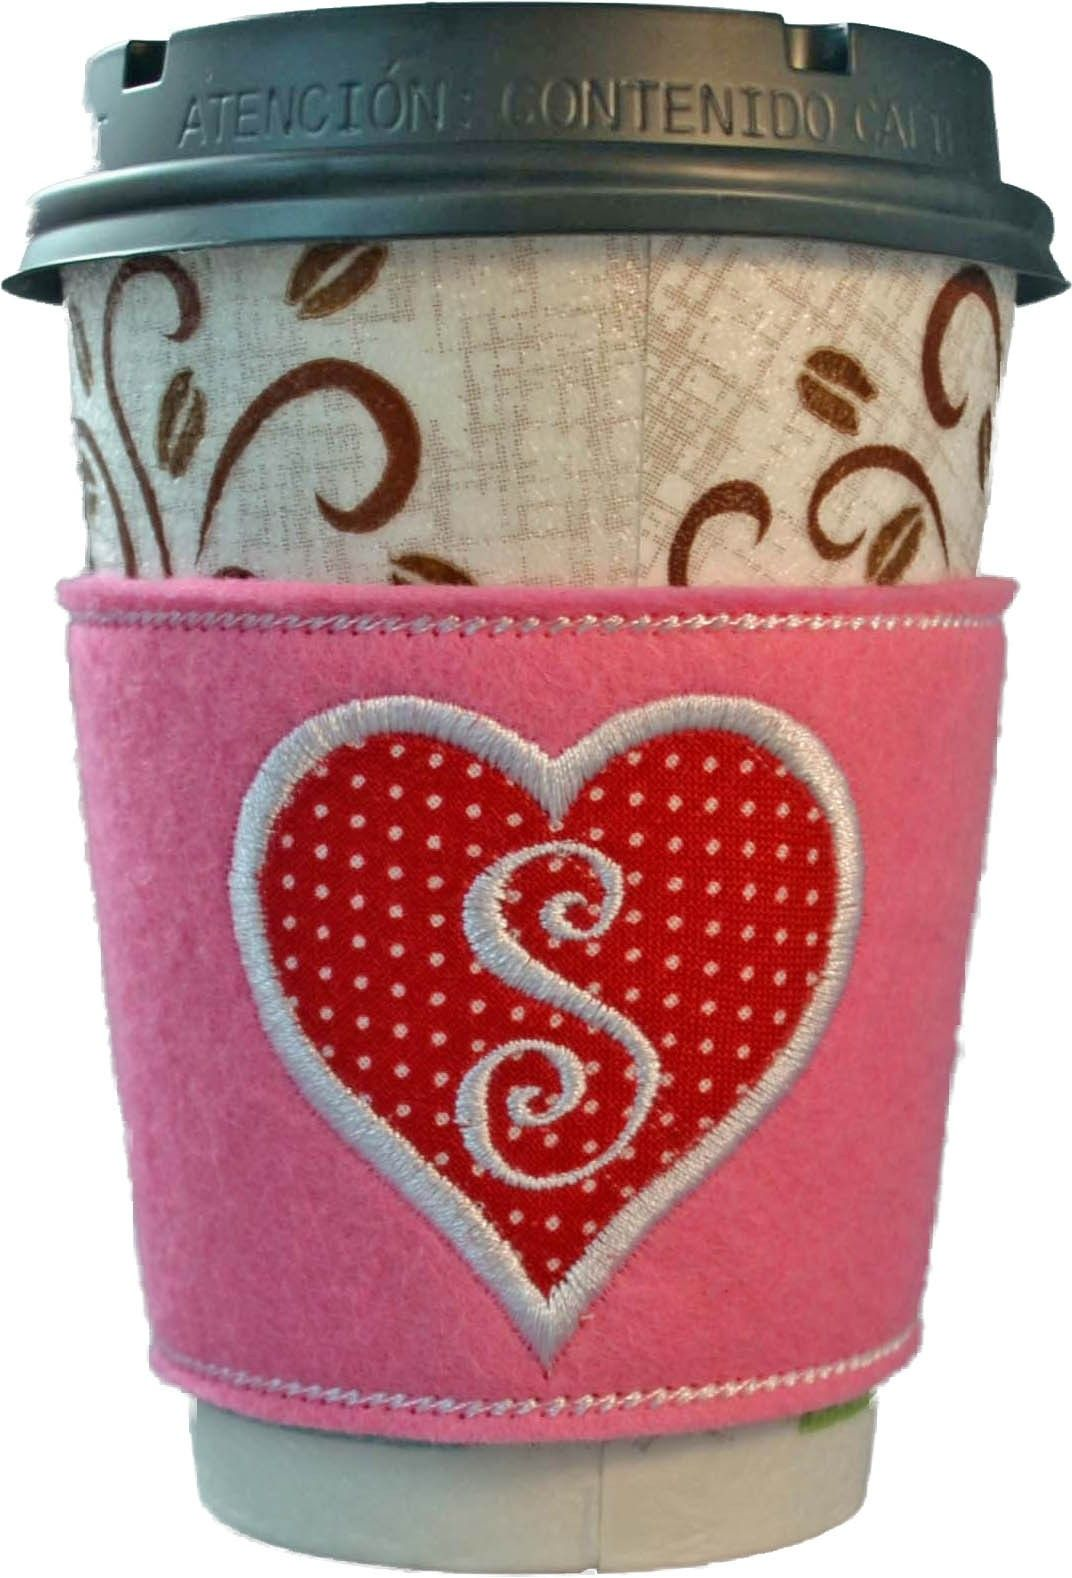 Monogrammed Heart Coffee Cozy - Go Green! Made right in the hoop of ...